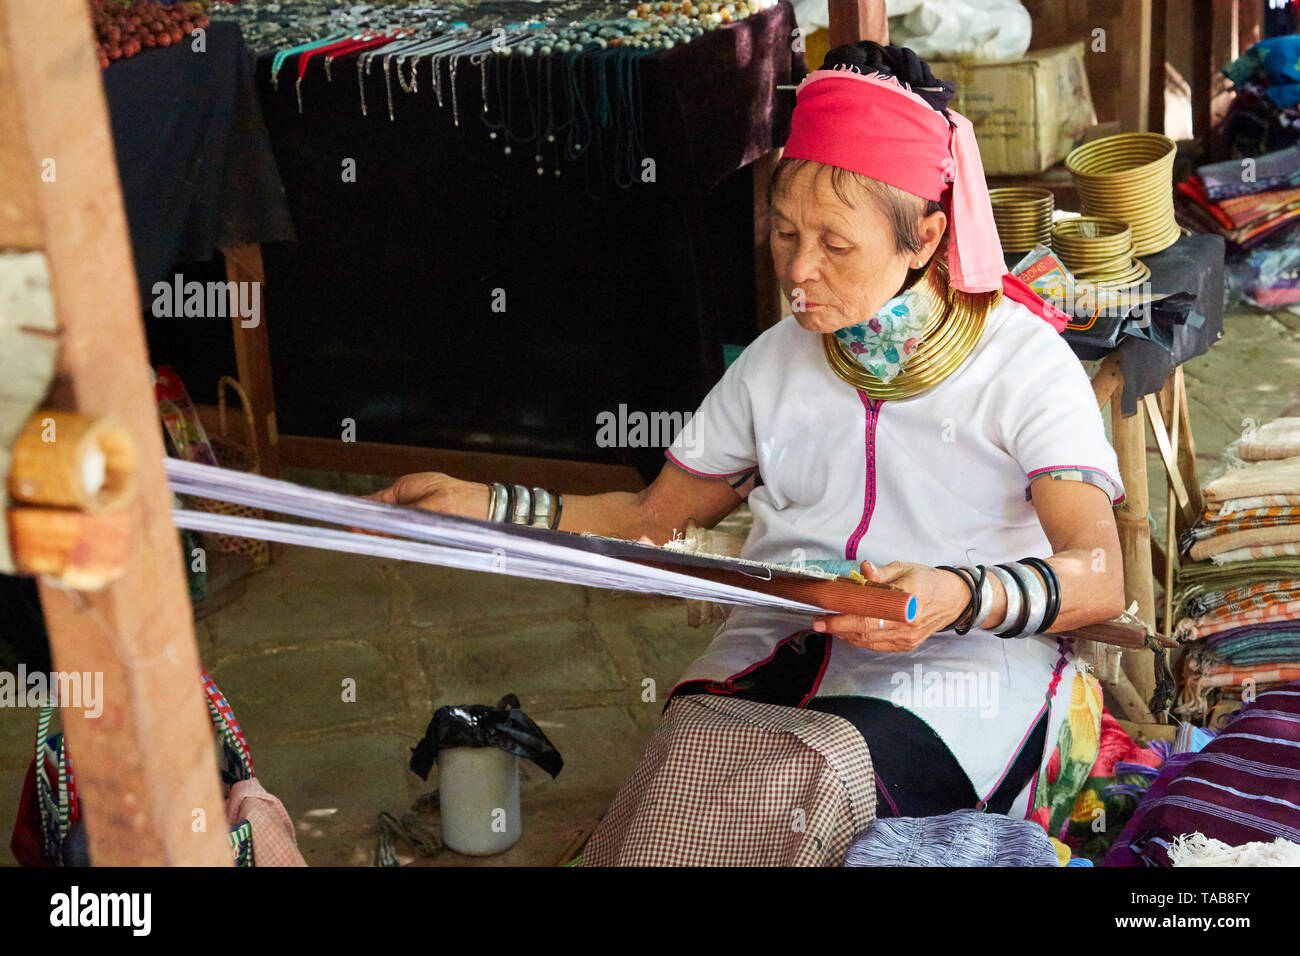 Kayan Lahwi demonstrating weaving technique in marketplace in Bagan, Myanmar. - Stock Image